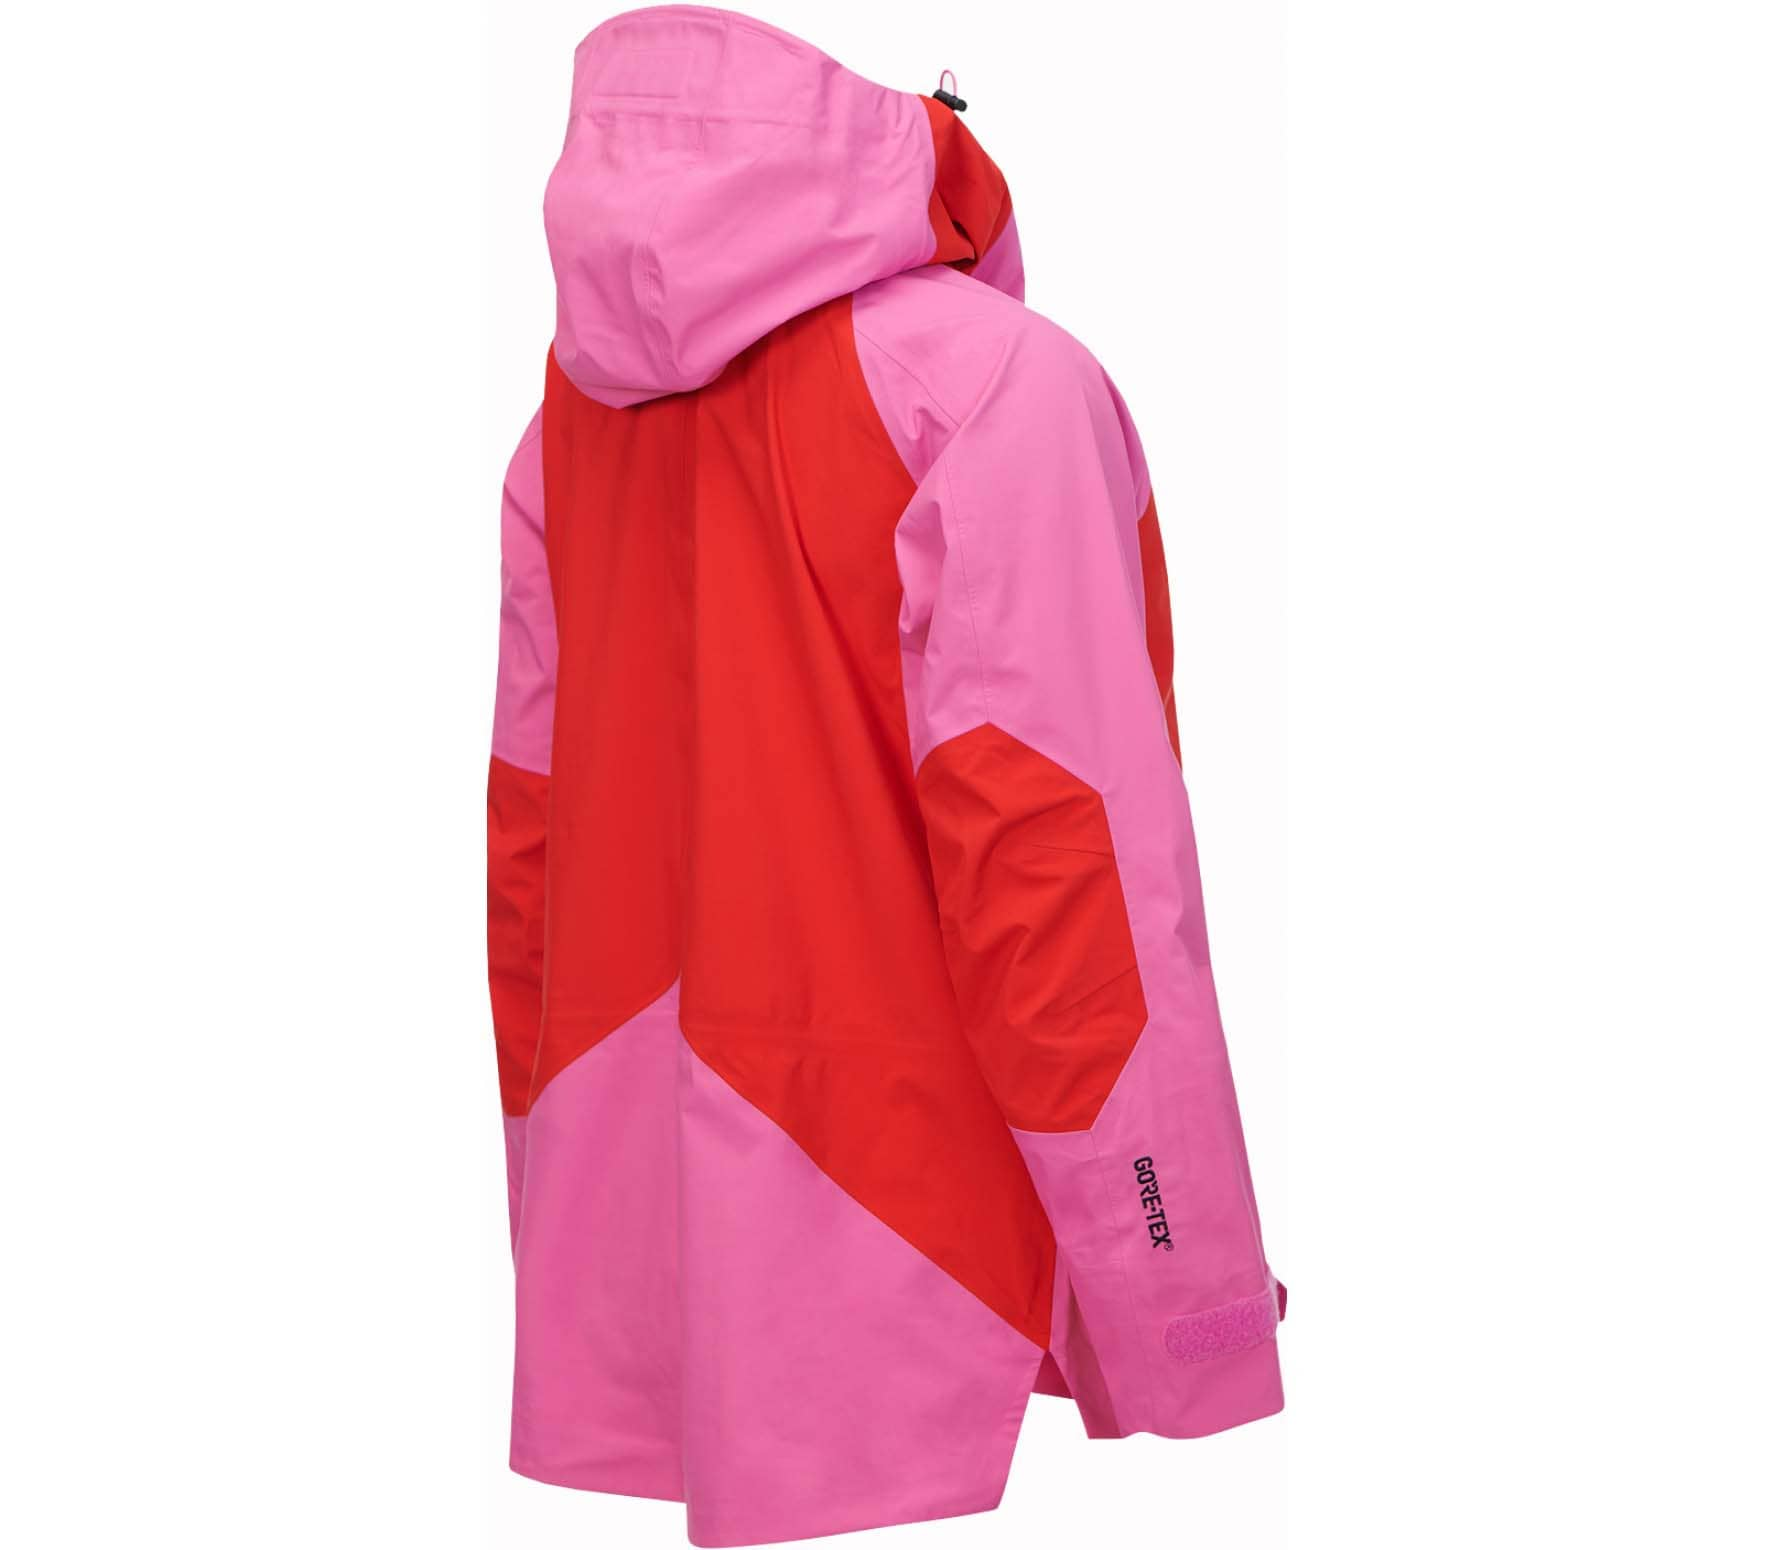 Peak Performance - Teton women's ski jacket (pink)